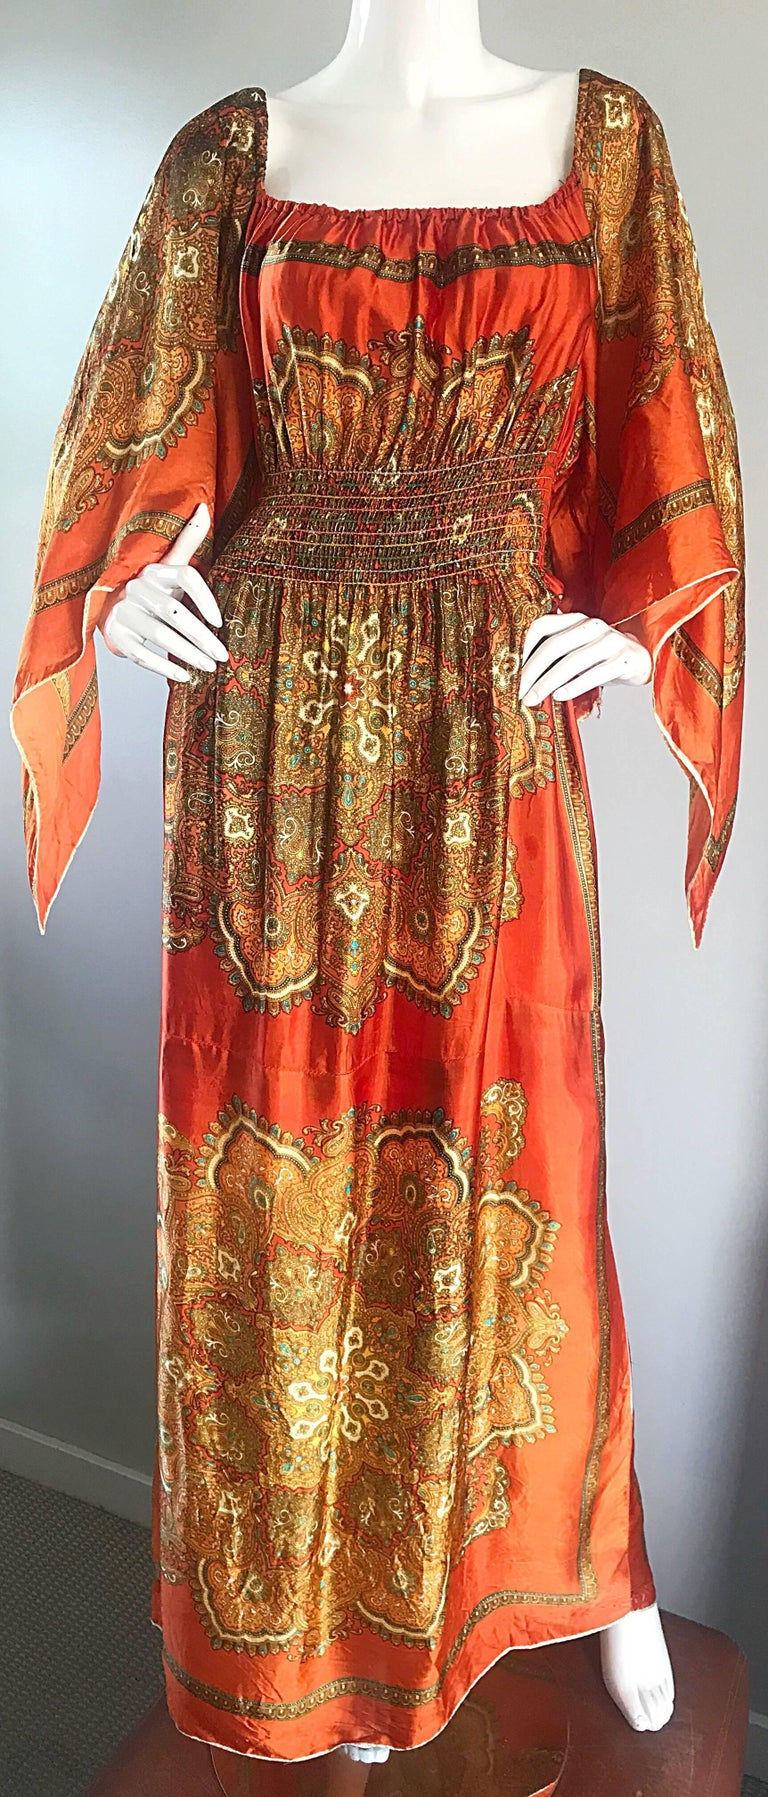 Amazing 1970s Off - Shoulder Boho Ethnic Print Silky Vintage 70s Maxi Dress For Sale 4